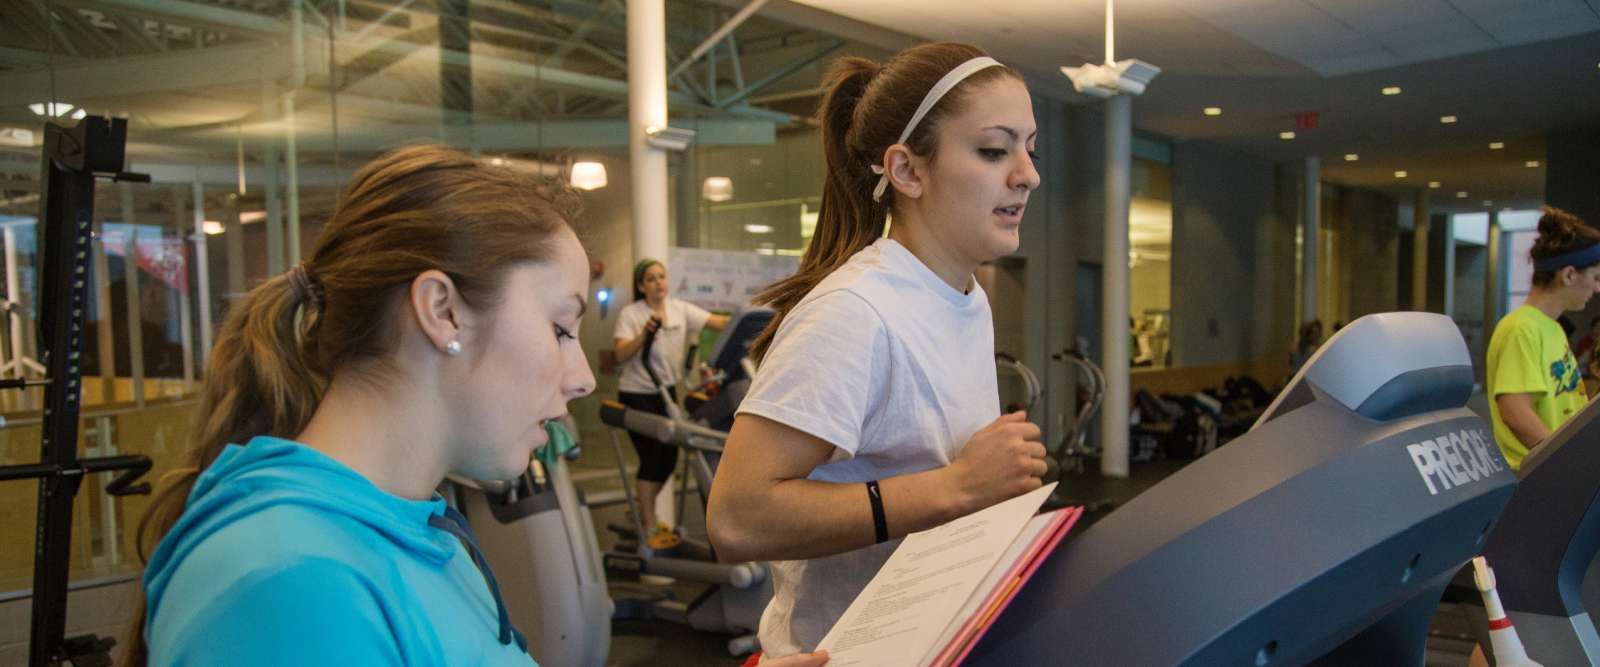 Students in fitness center